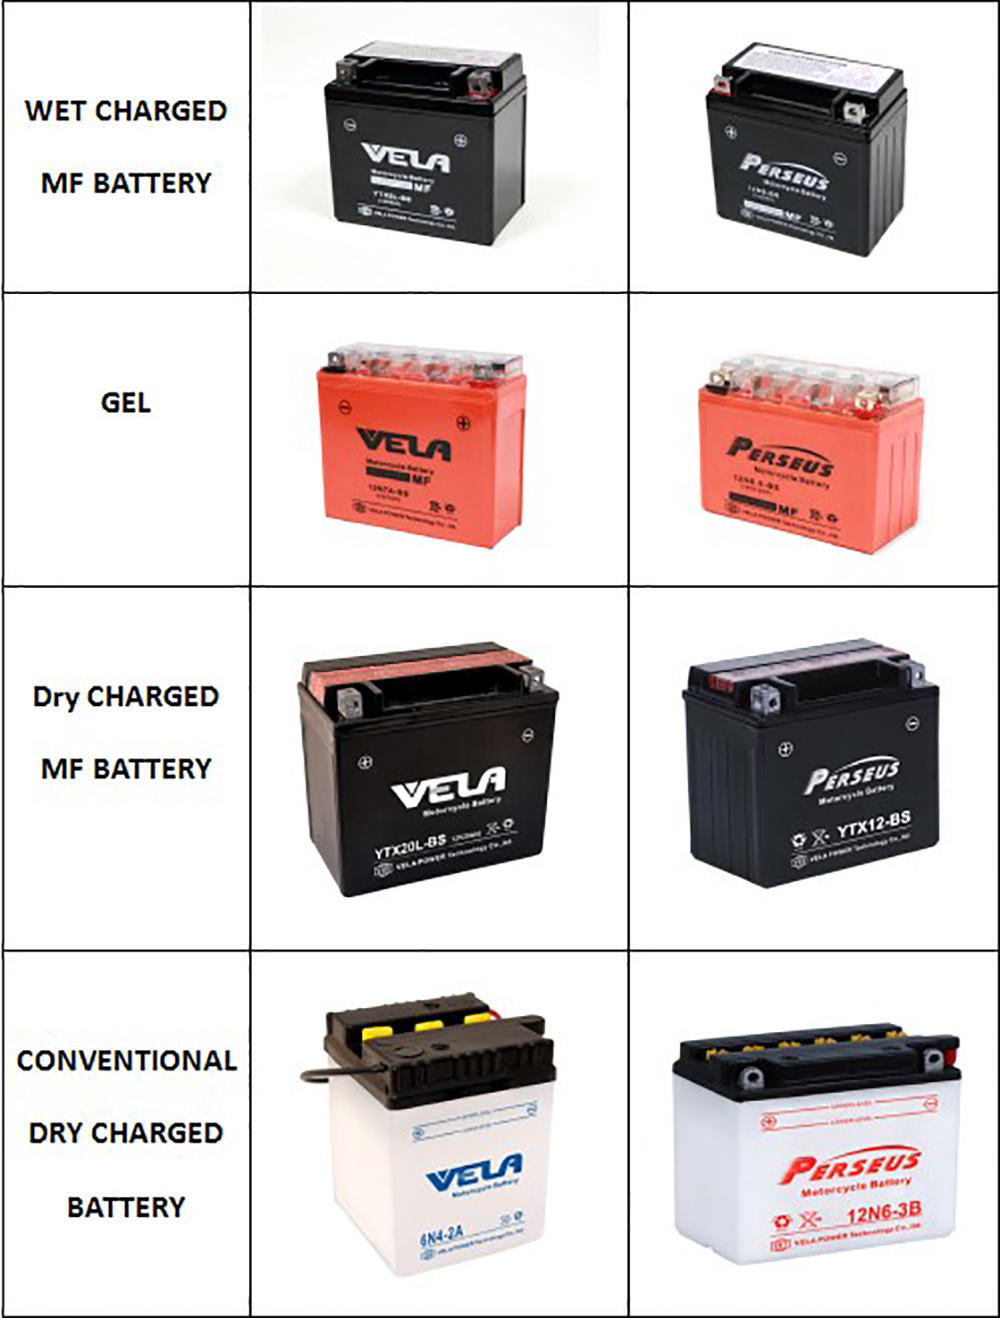 VELA mf battery great for motorcycle industry-2